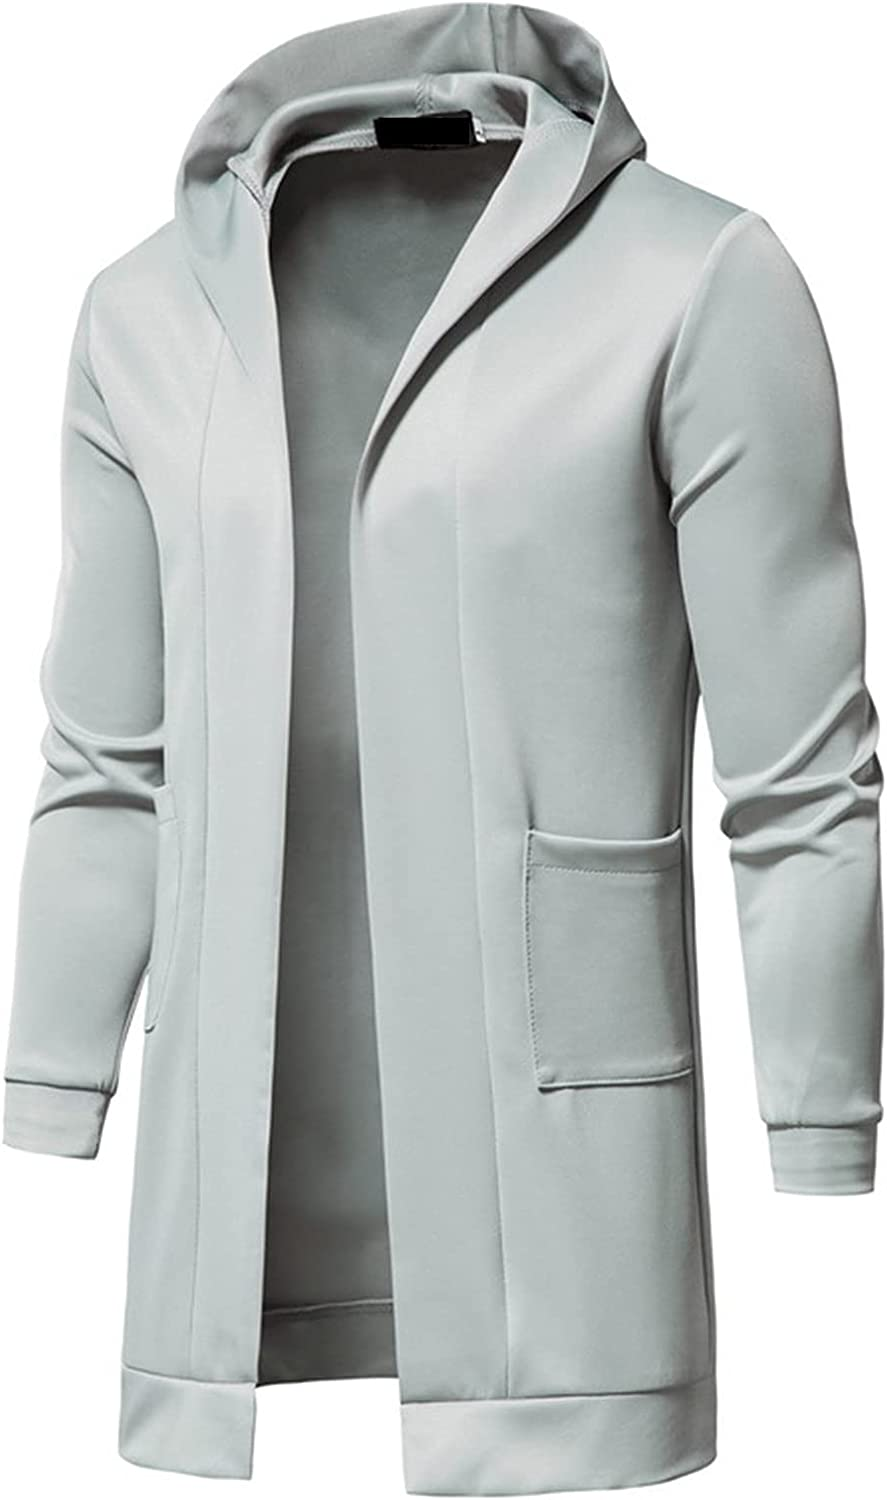 XXBR Tunic Cardigan Coat for Mens, 2021 Long Sleeve Open Front Casual Windbreaker Fashion Long Outerwear with Pockets